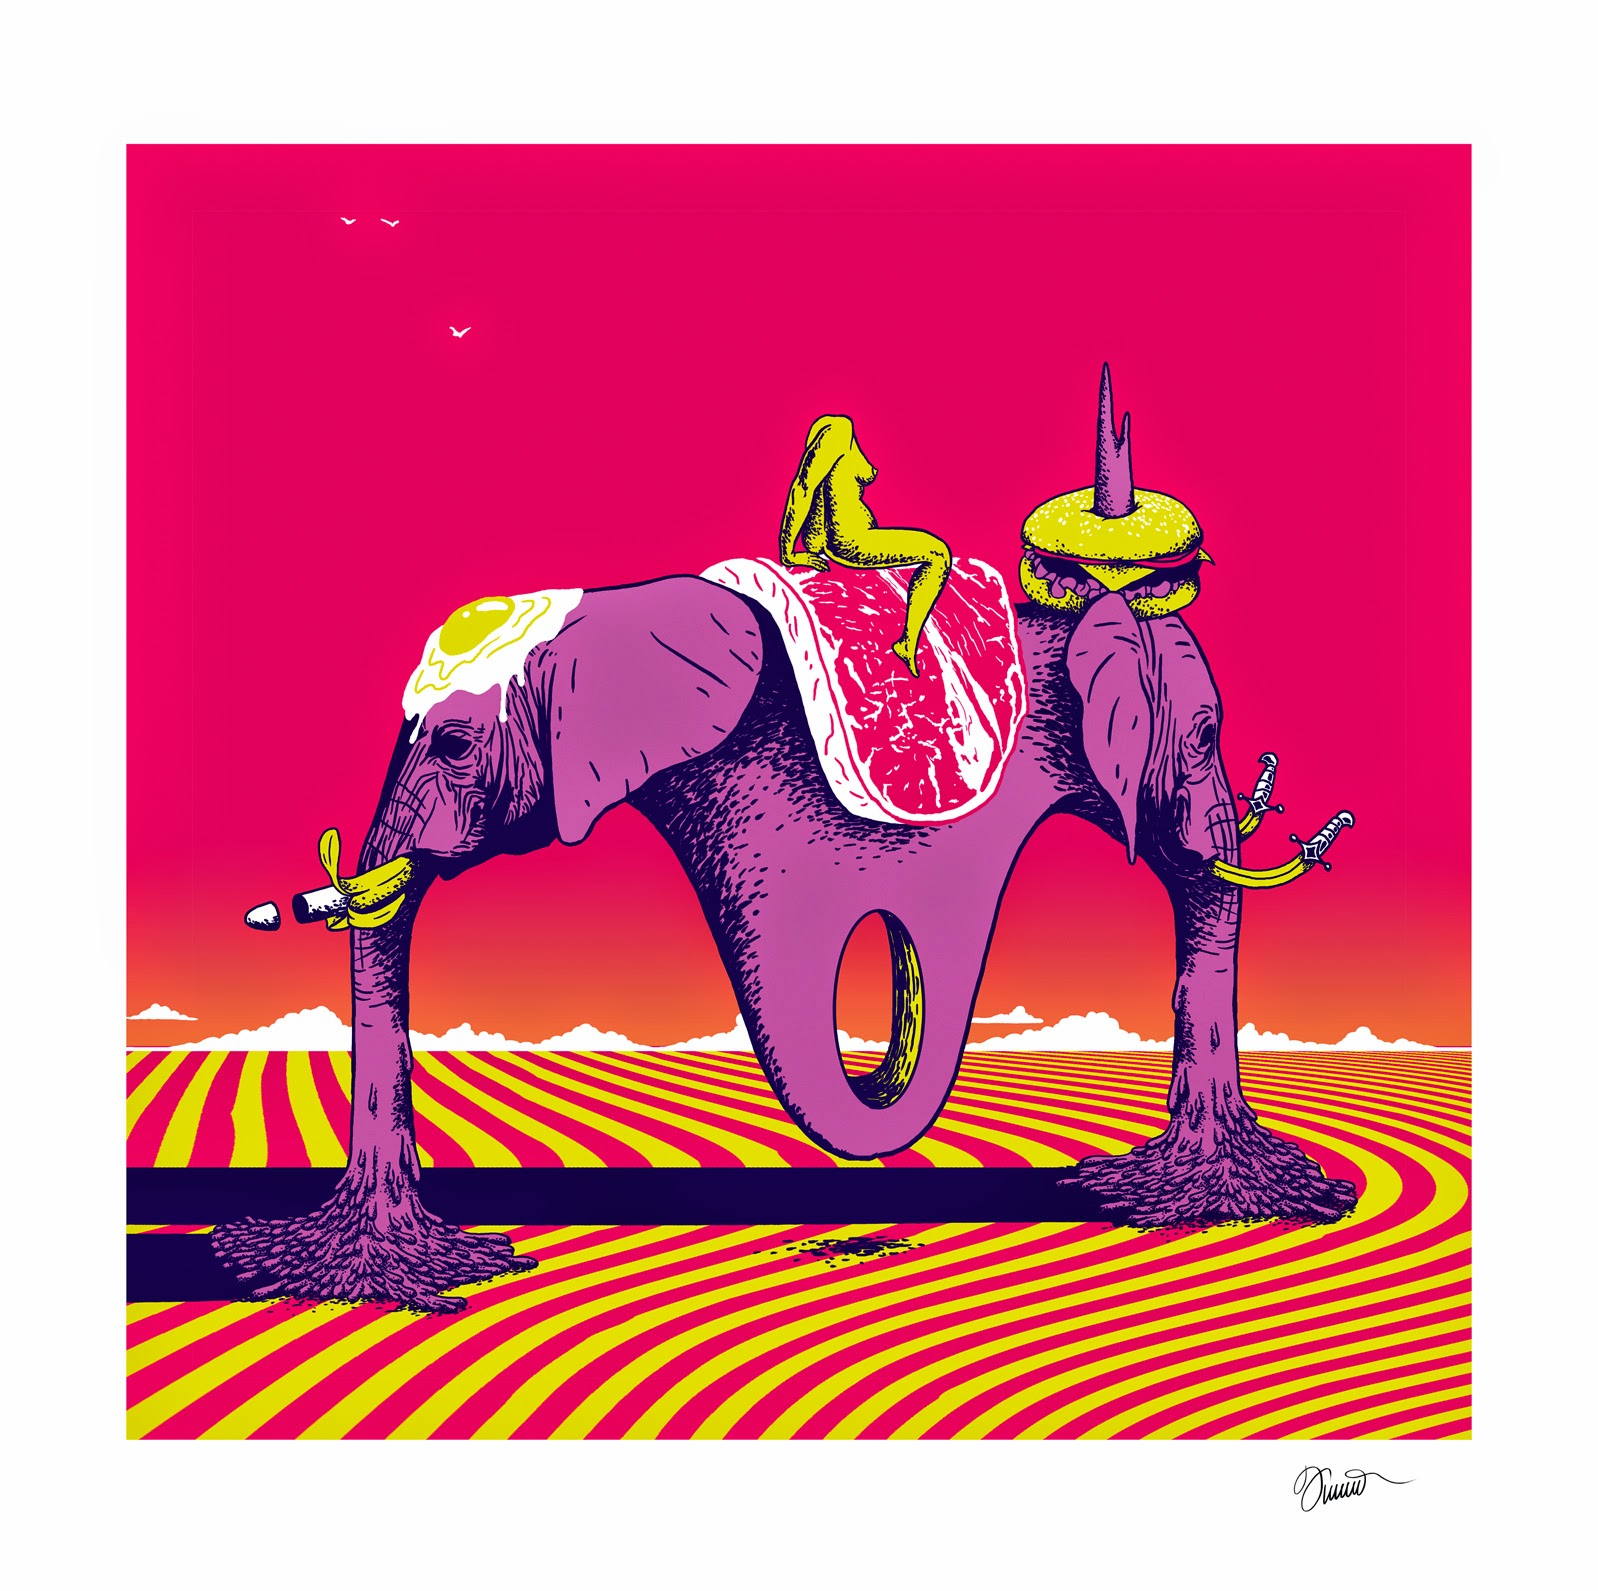 ©Andrey Flakonkishochki - Neon Ecstasy & Psychological Journeys. Ilustración | Illustration